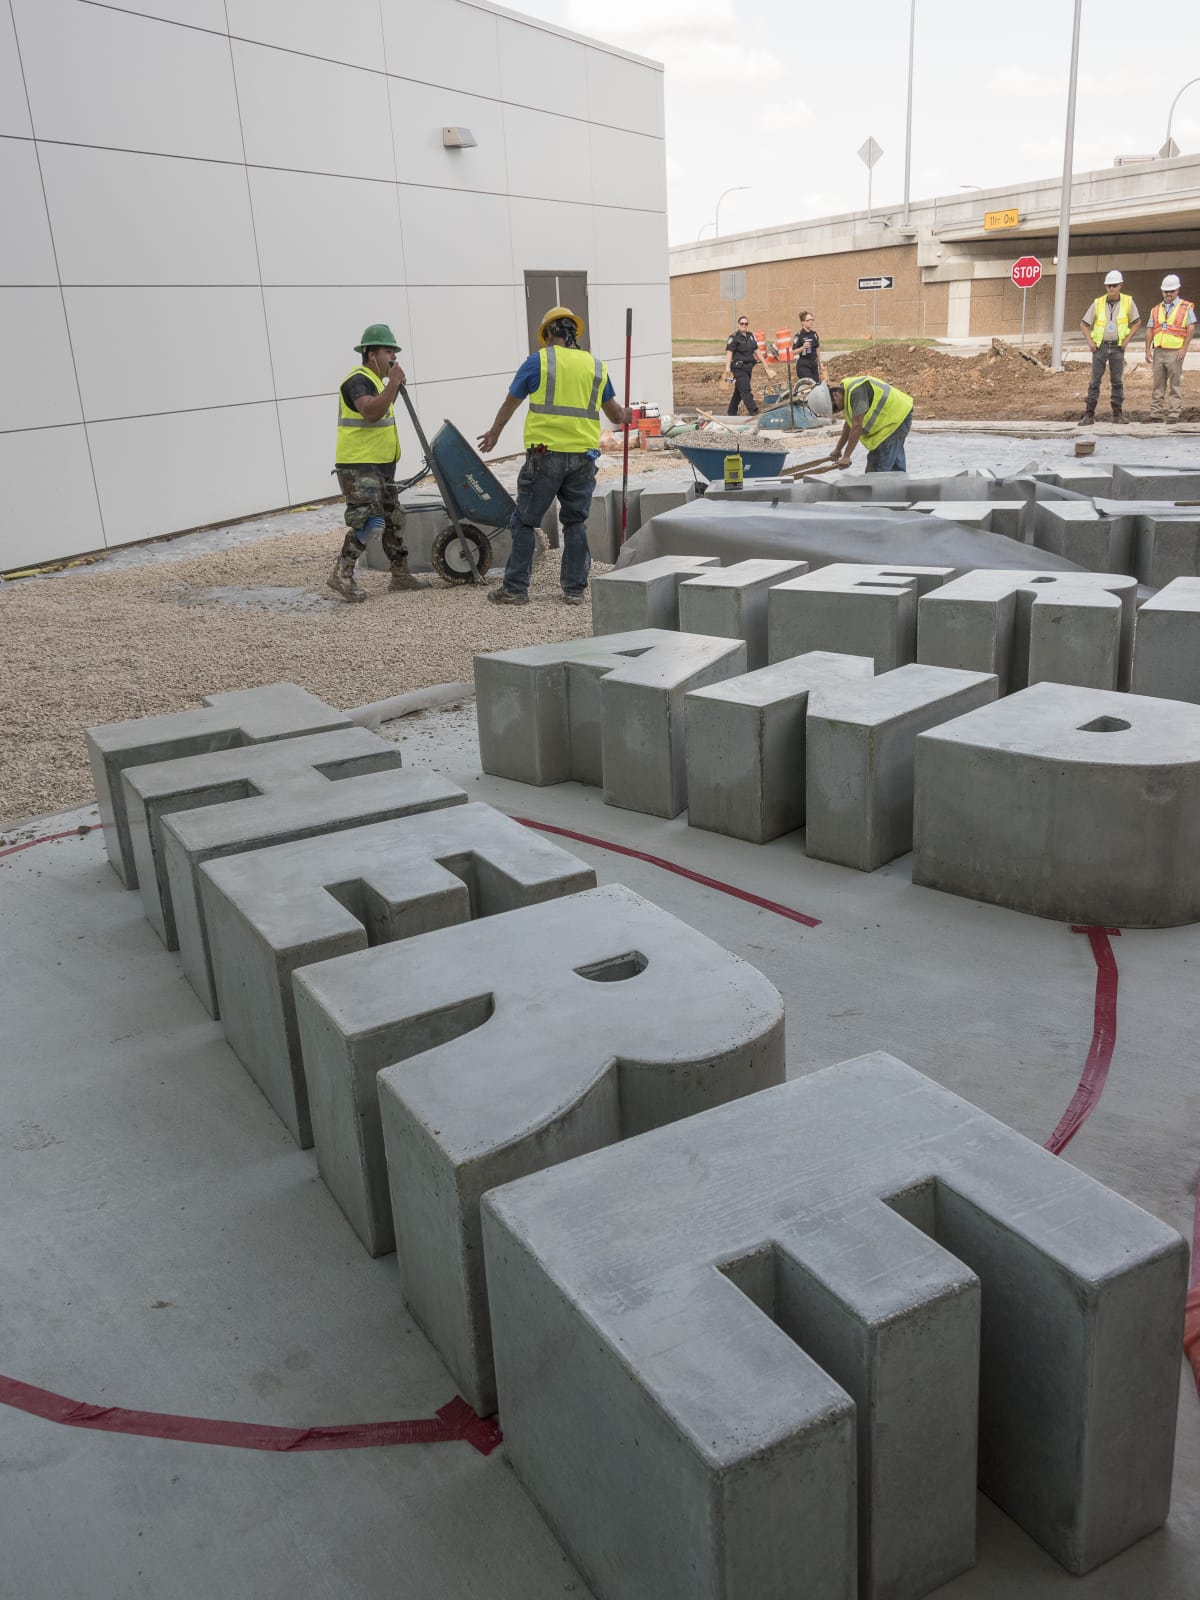 Hobby Airport art sculpture name to come